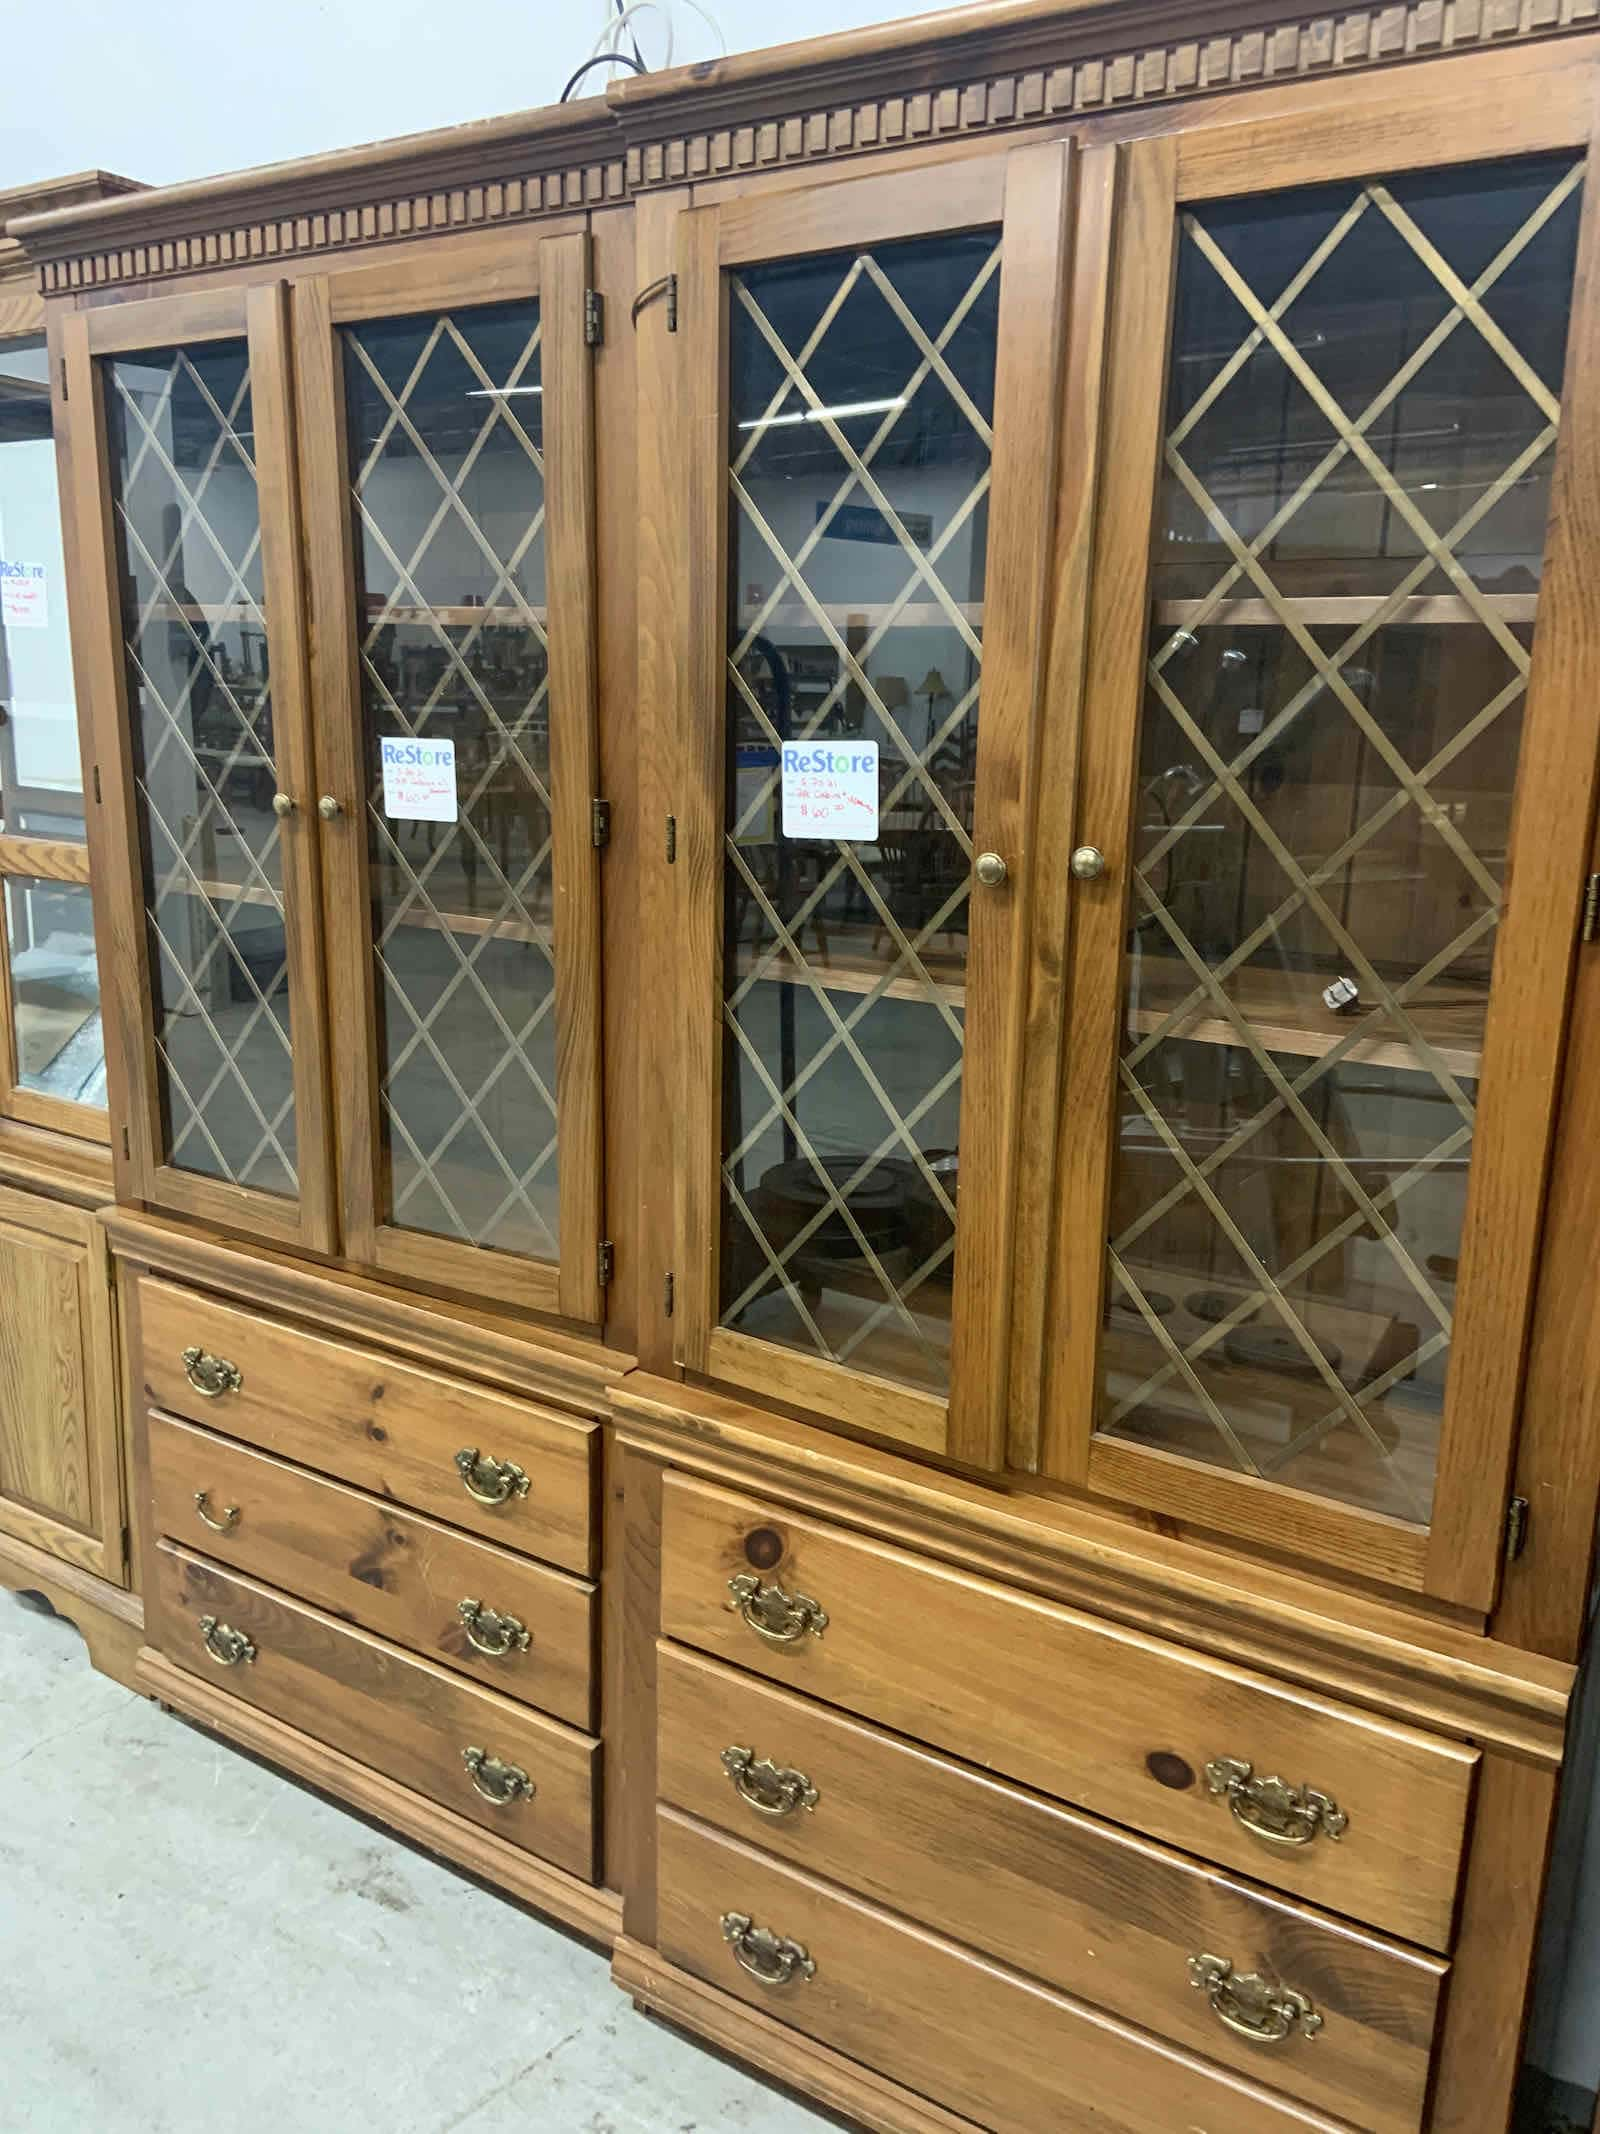 cabinets from the restore